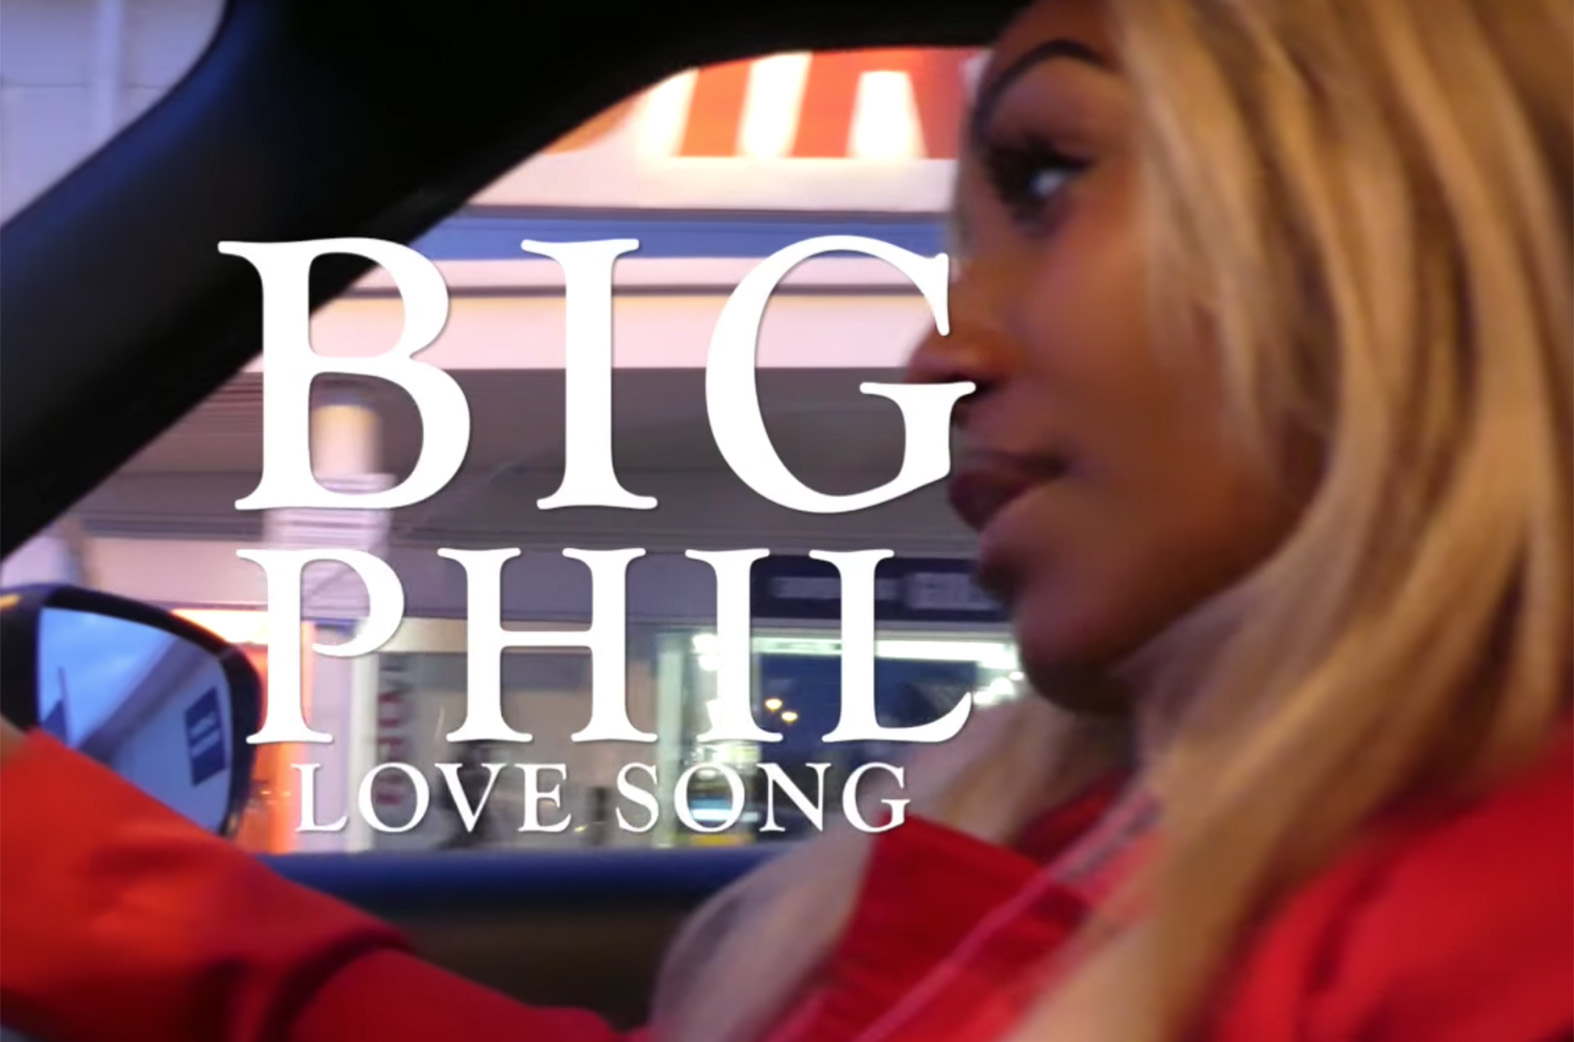 Video: Love Song by Big Phil